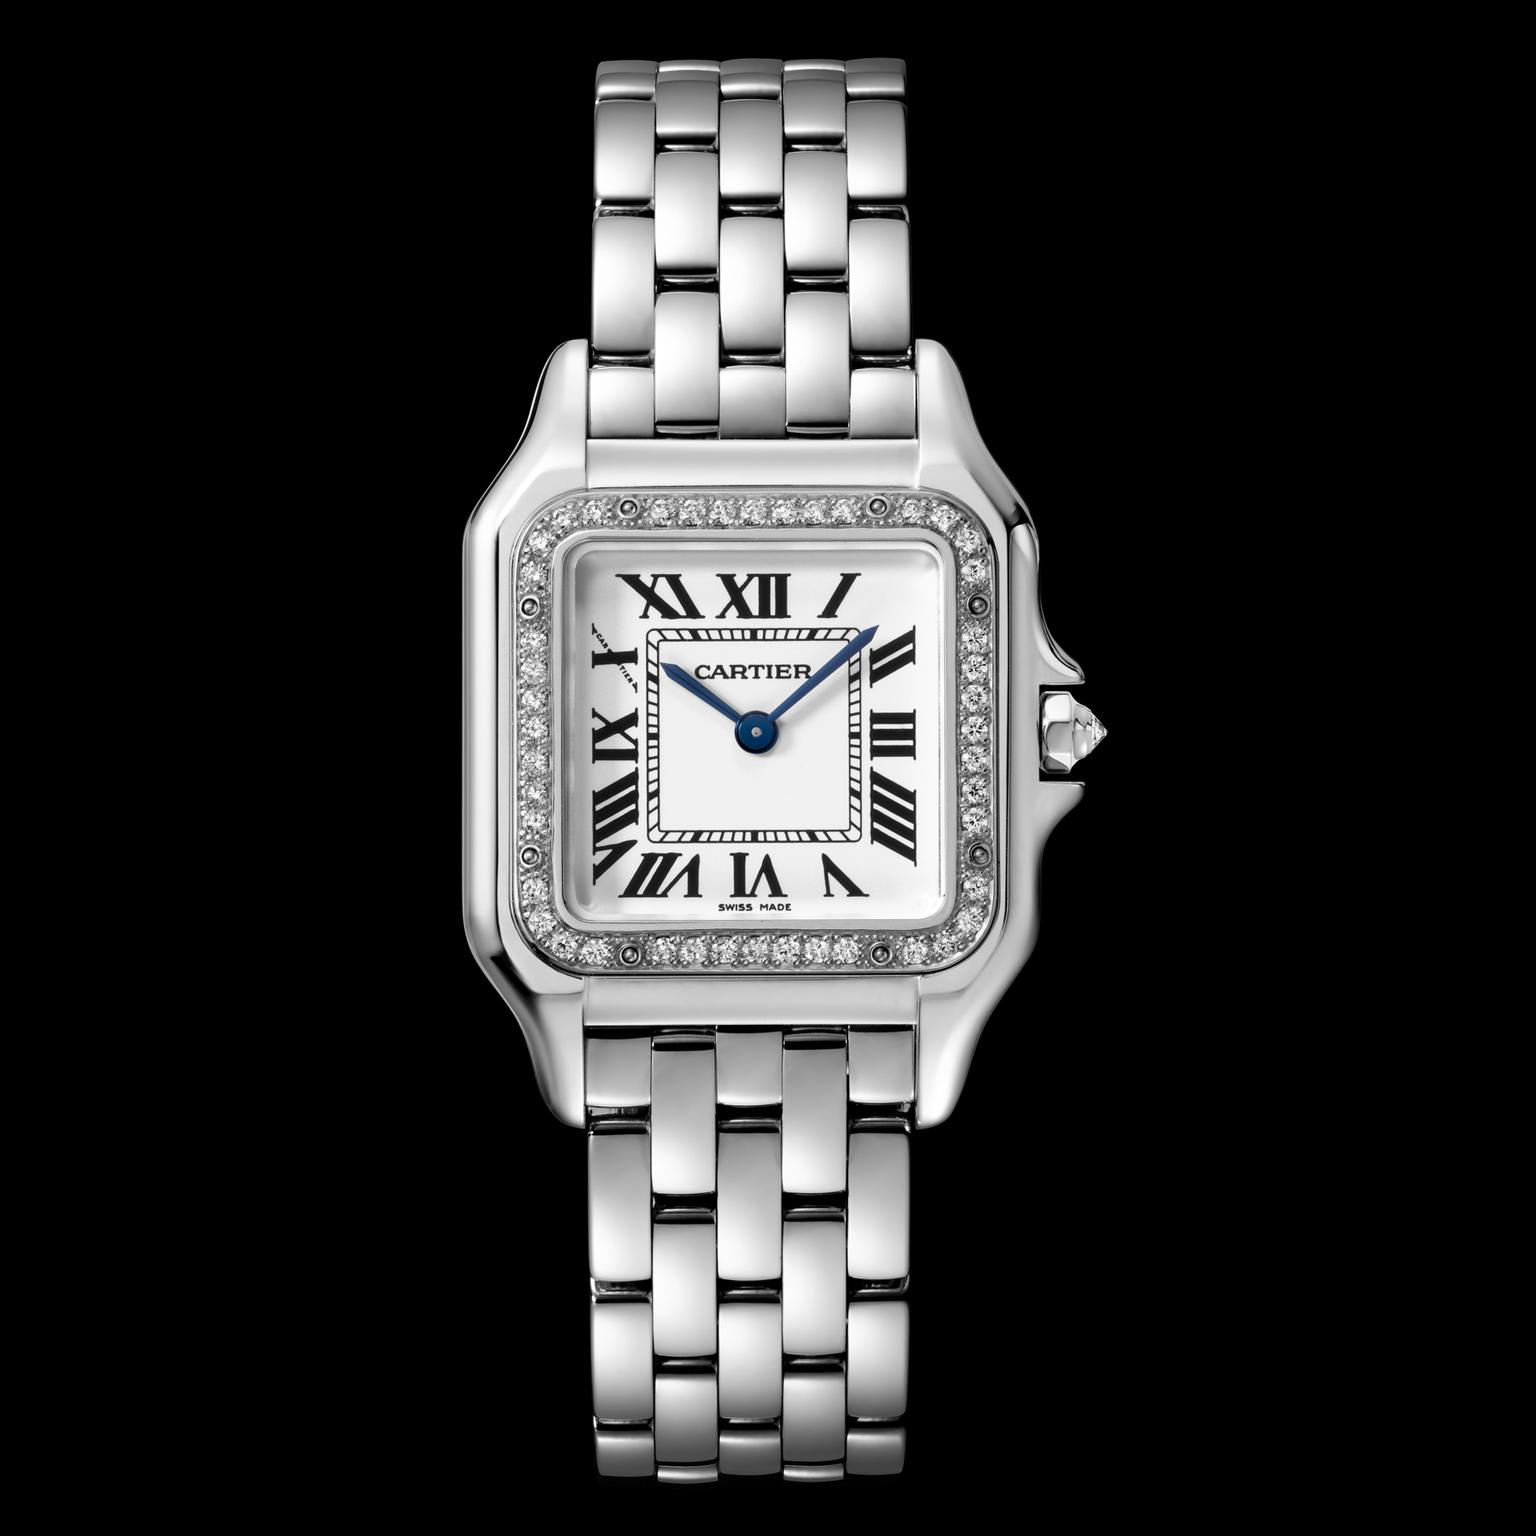 Panthere de Cartier watch in white gold with diamonds